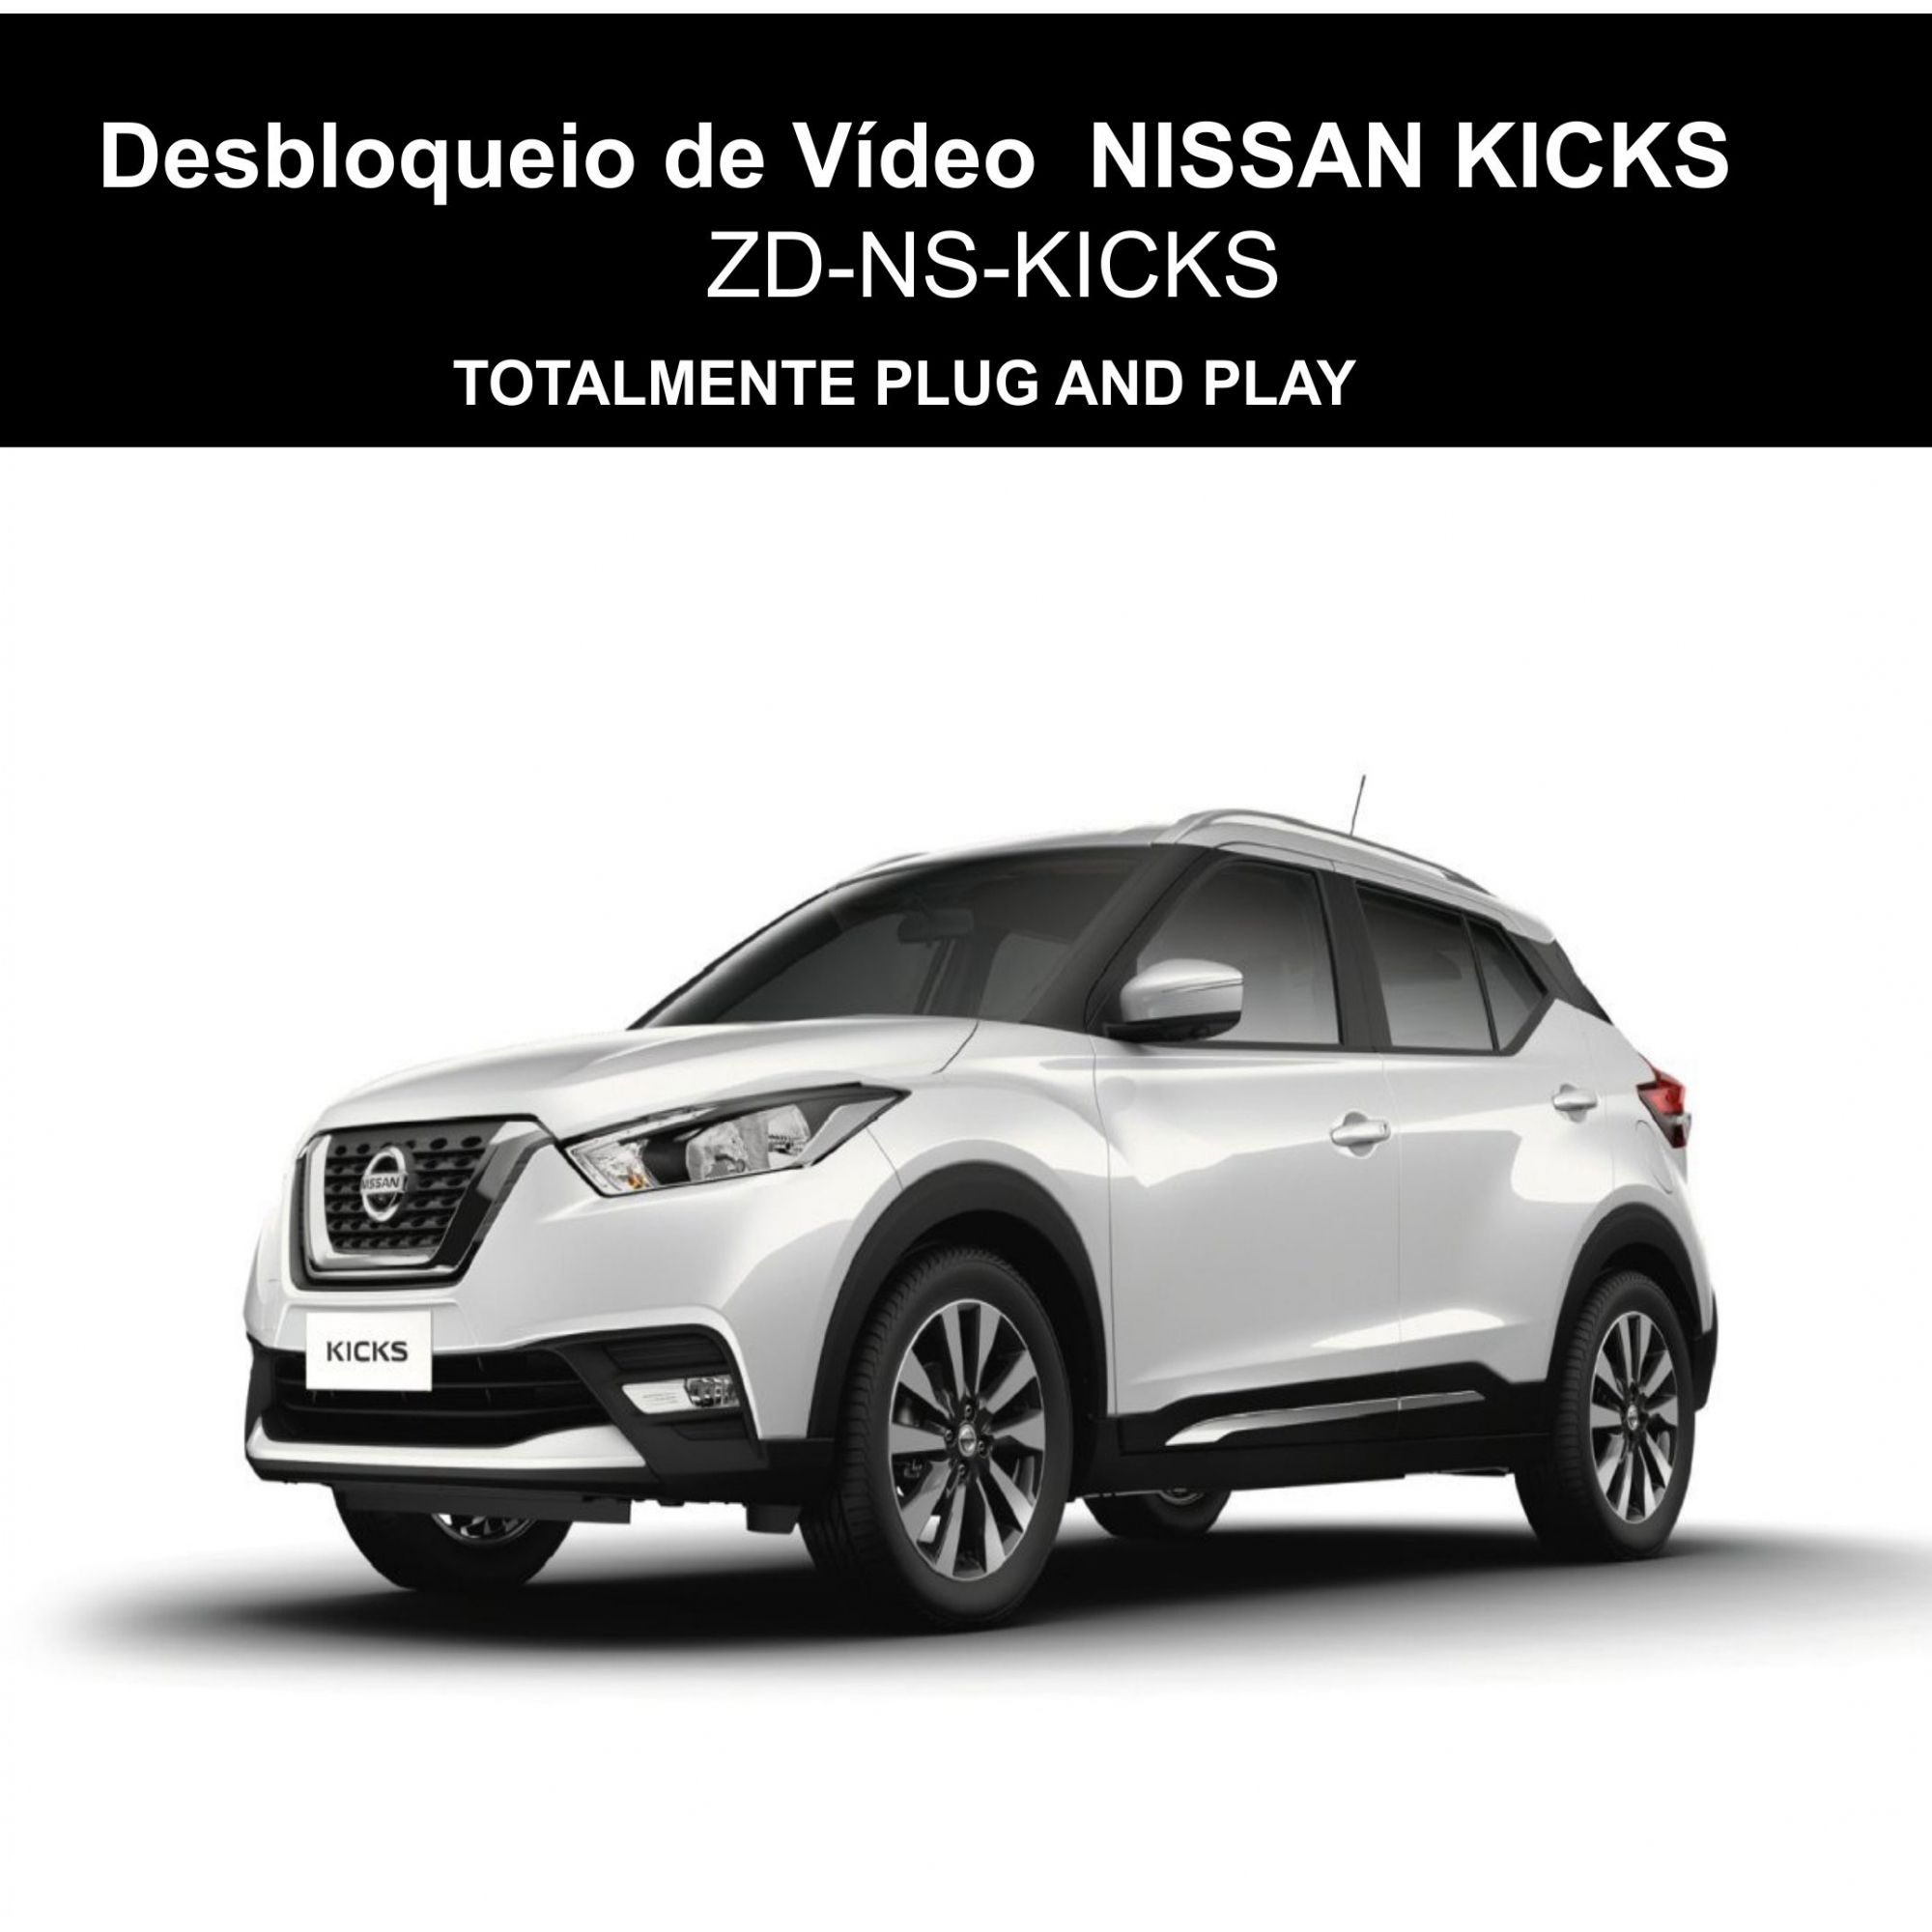 Interface Desbloqueio de Vídeo Nissan Kicks Zendel ZD-NS-KICKS